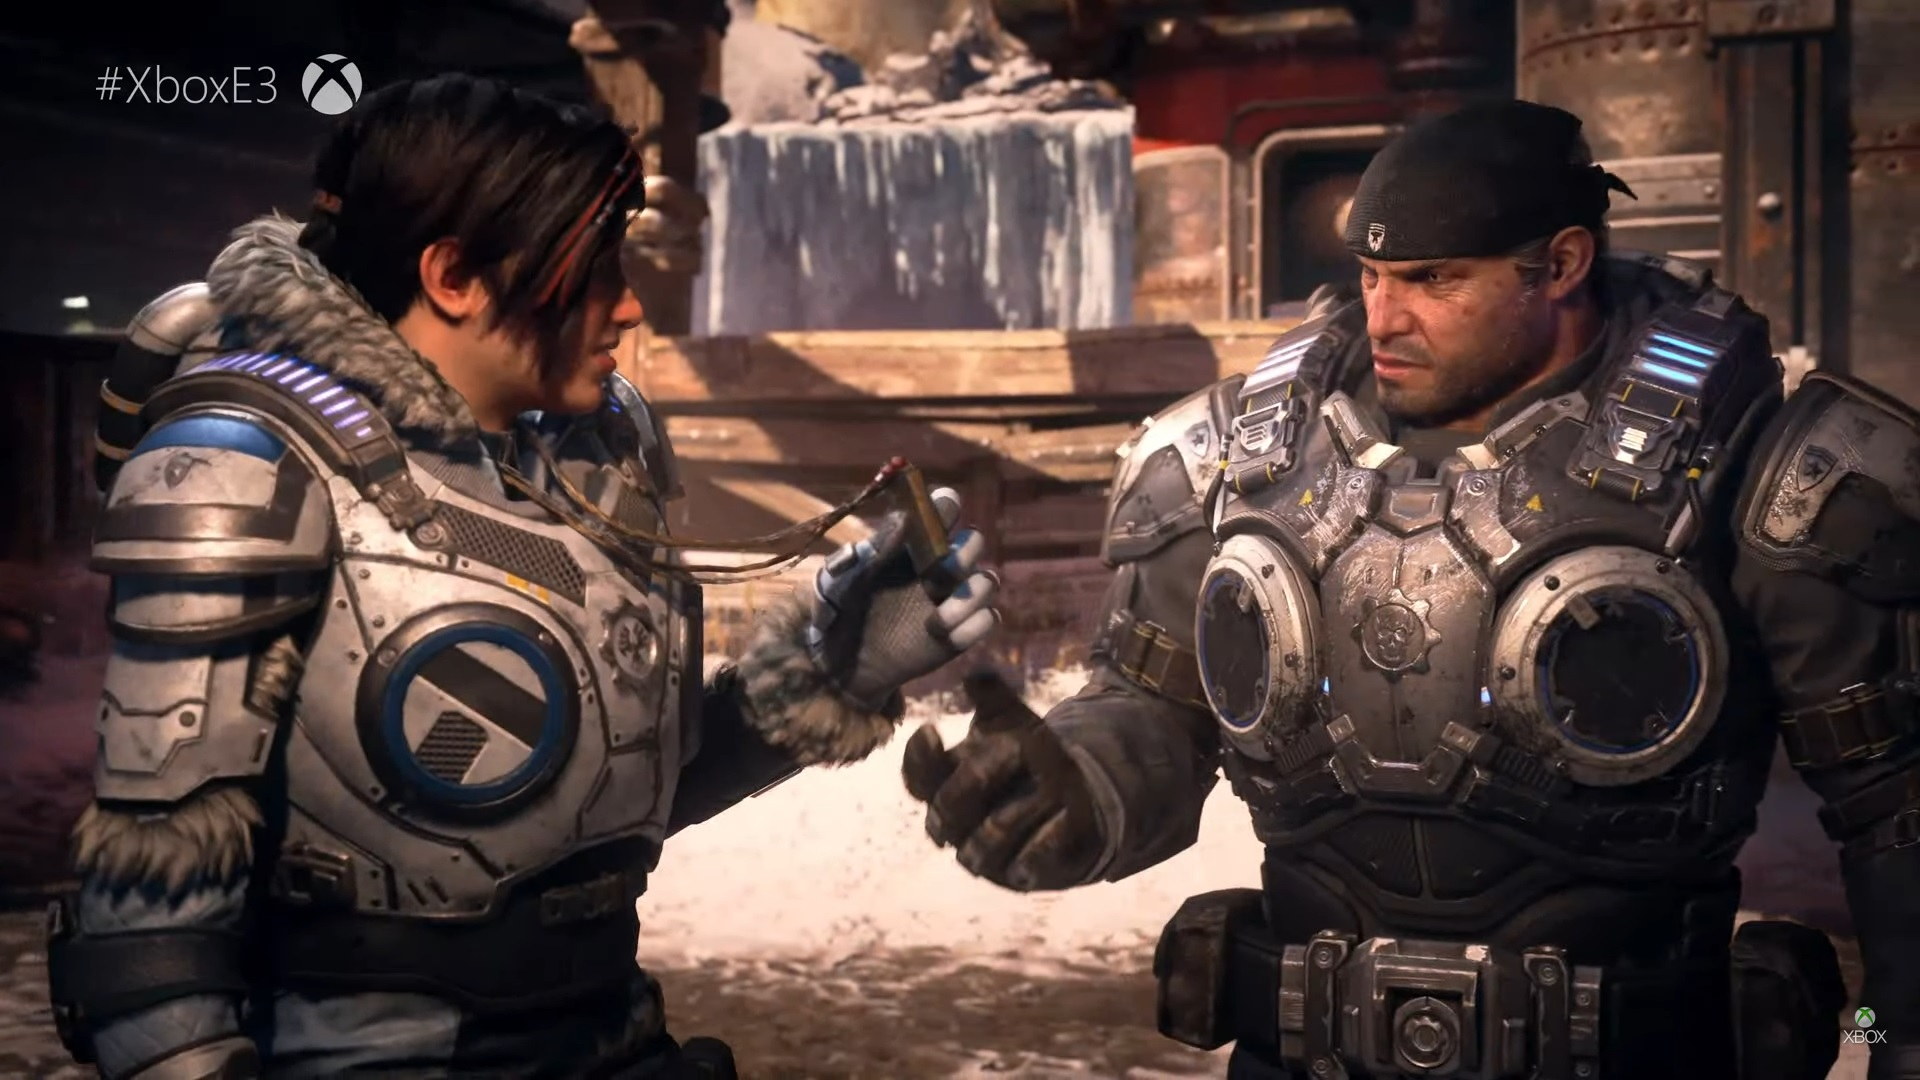 Gears 5 Is The Most Played Game Right Now On Xbox Live, Dethrones Fortnite Which Has Been On The #1 Spot Since Summer 2018